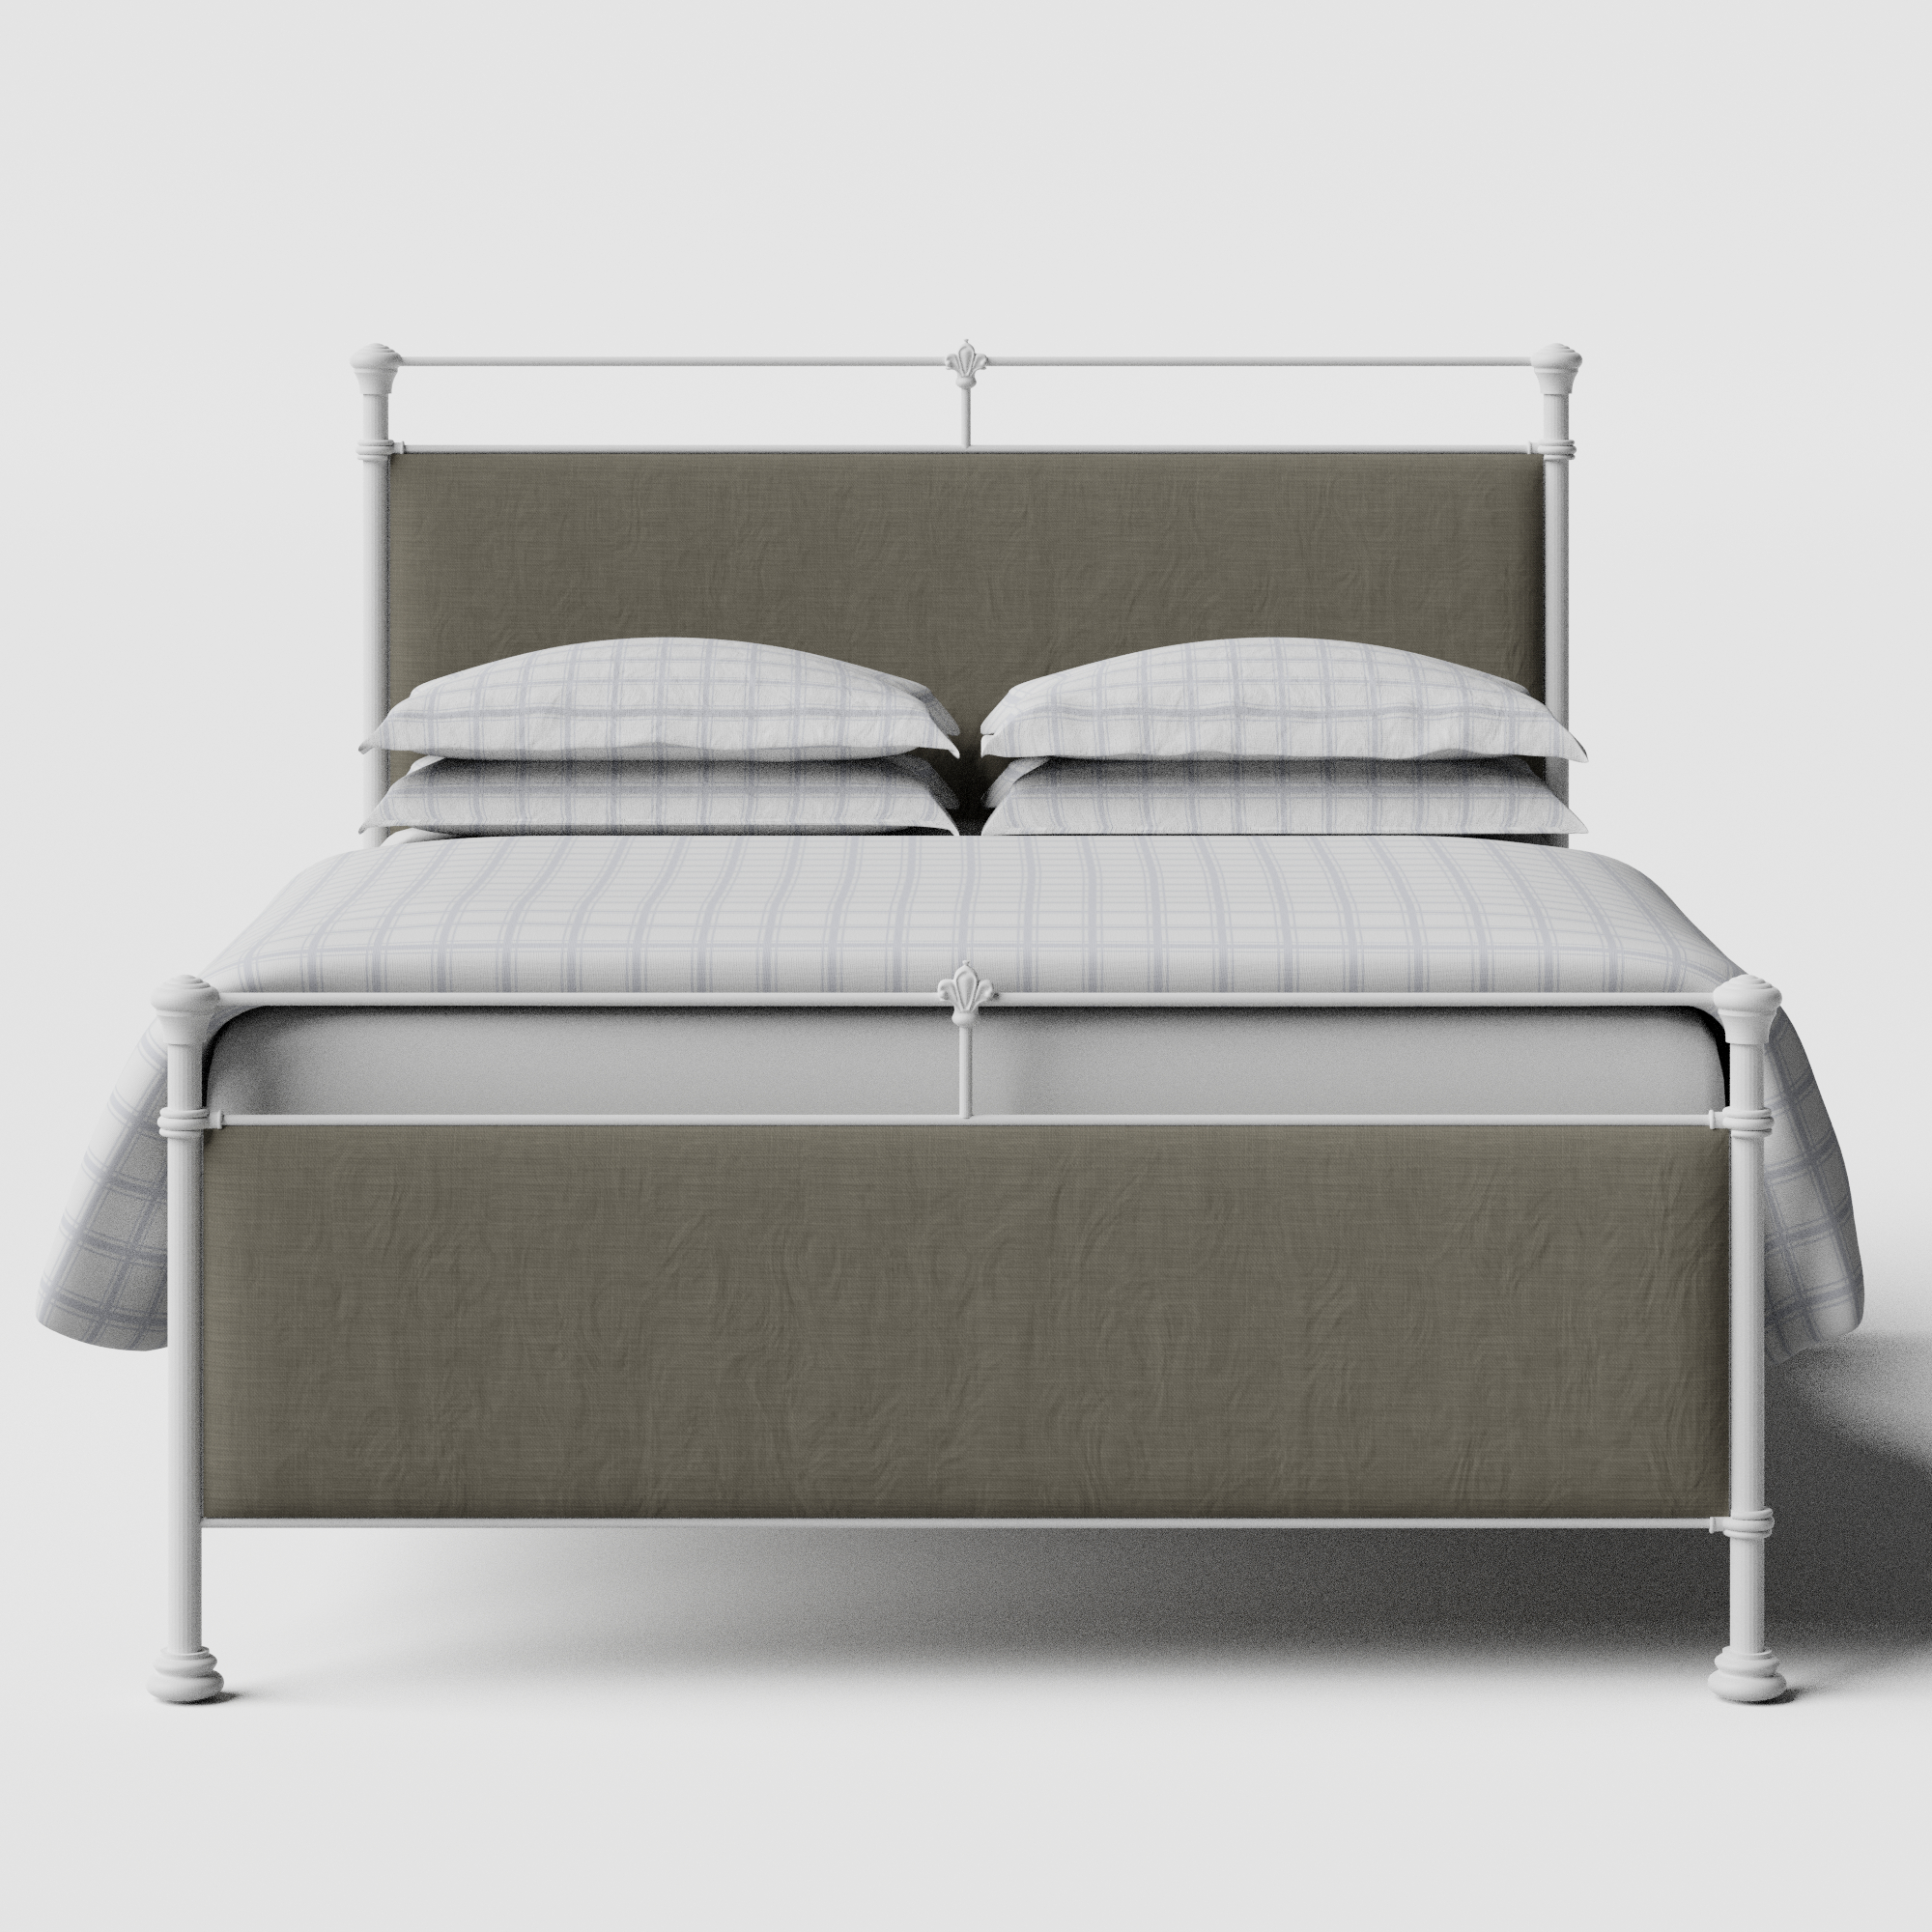 Nancy iron/metal upholstered bed in white with grey fabric